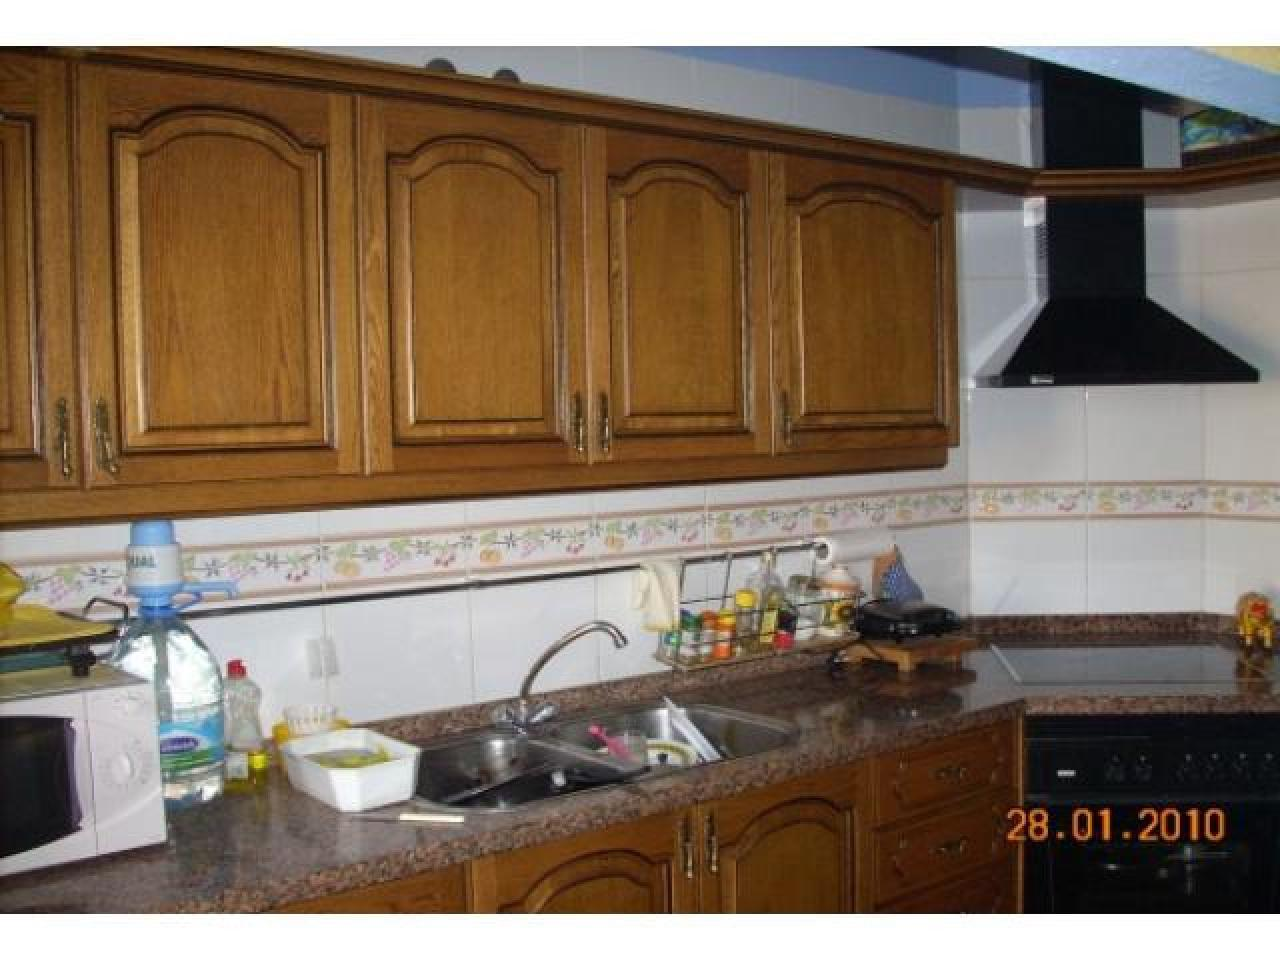 Real estate in Tenerife for sale » #138 - 2